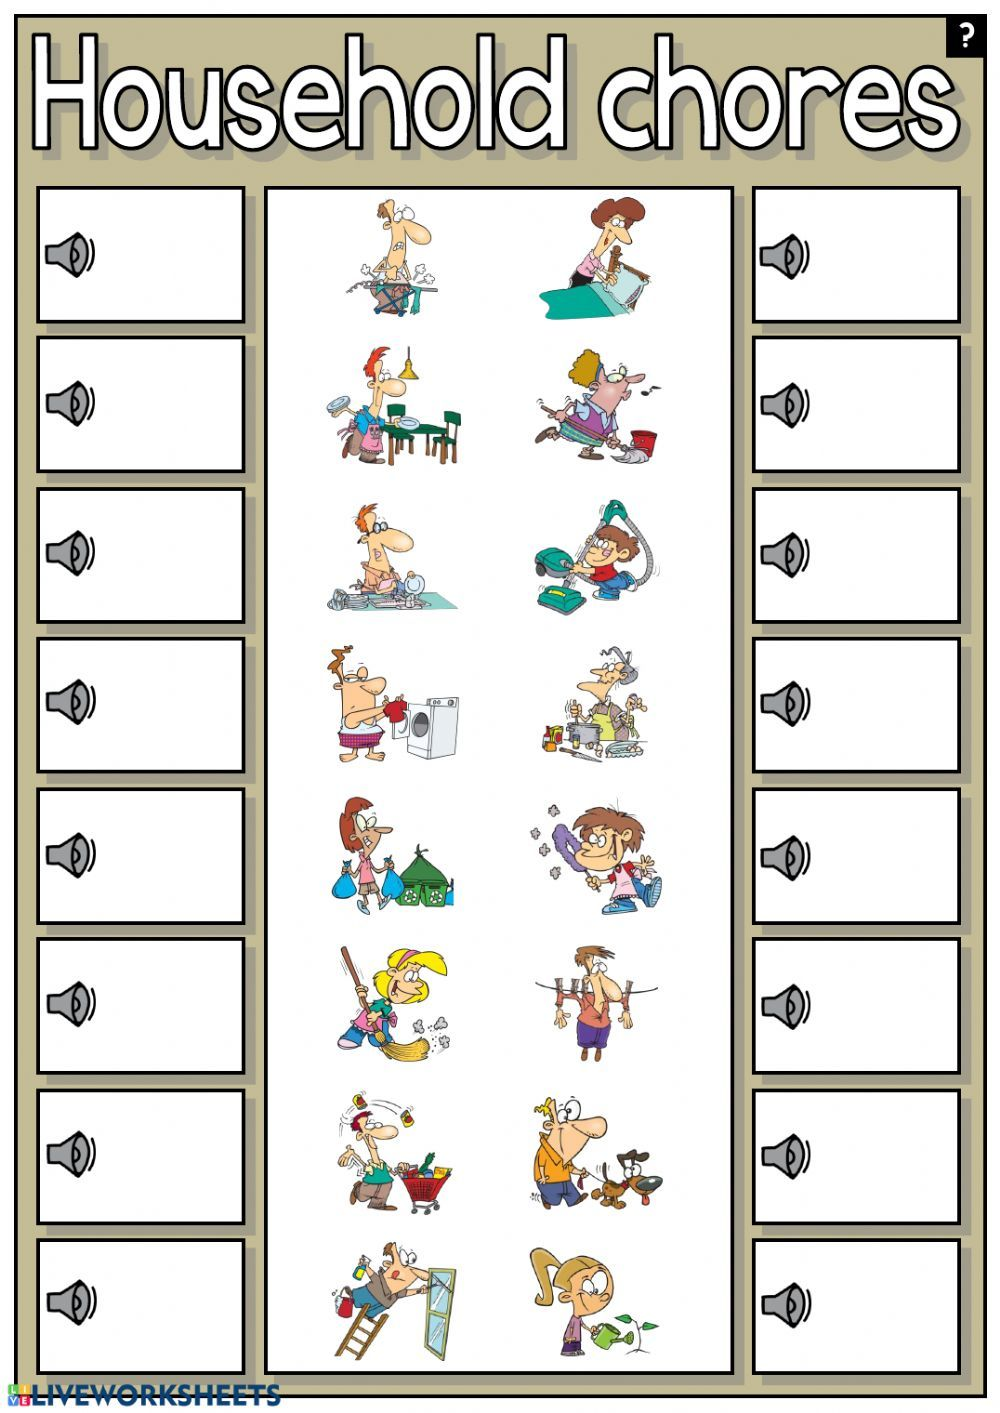 Household Chores Interactive And Downloadable Worksheet You Can Do The Exercises Online Or Download The Worksheet As Pdf Household Chores Chores Worksheets